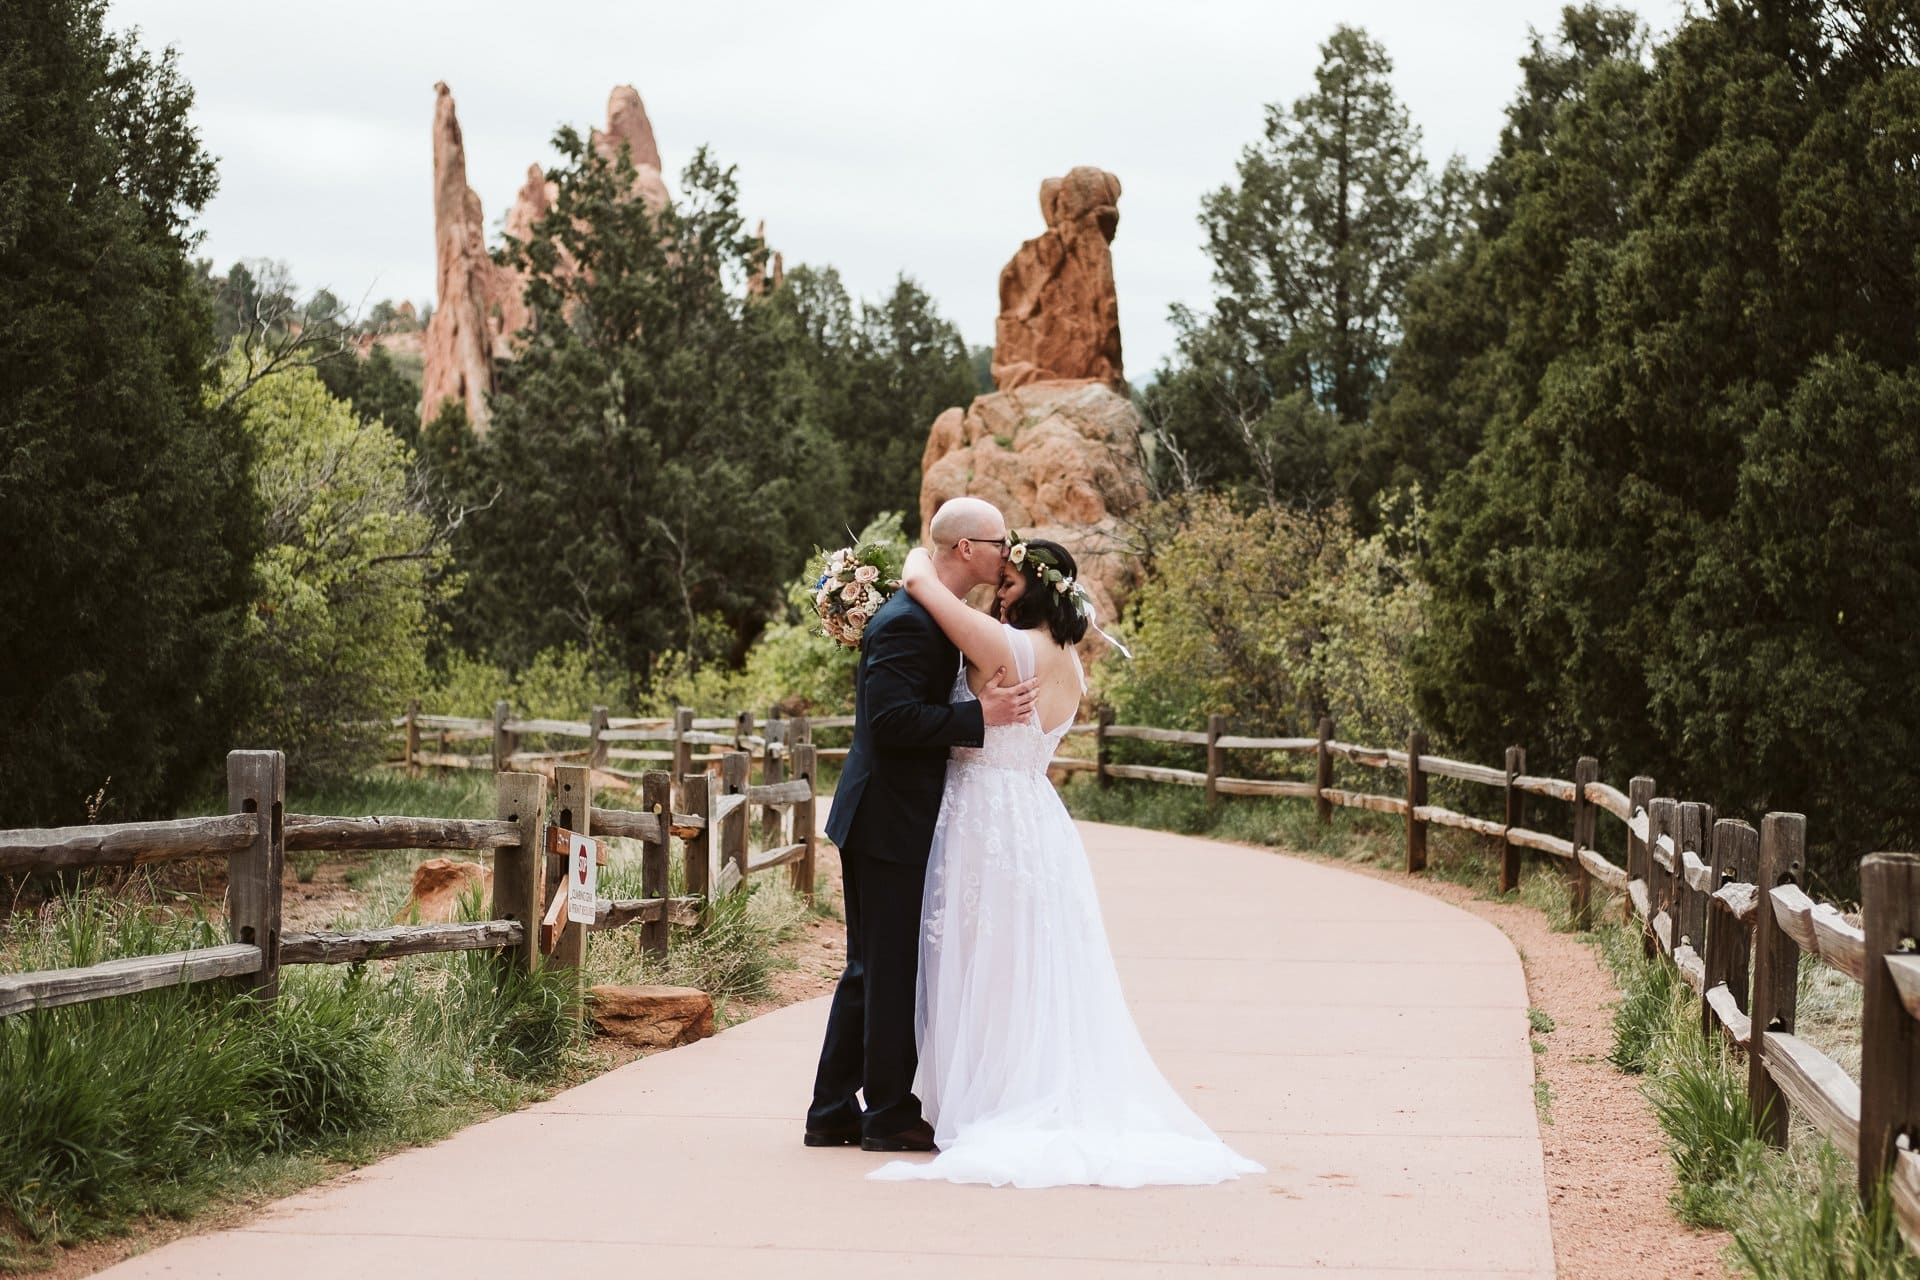 Bride and groom wedding photos at Garden of the Gods in Colorado with jagged red rocks